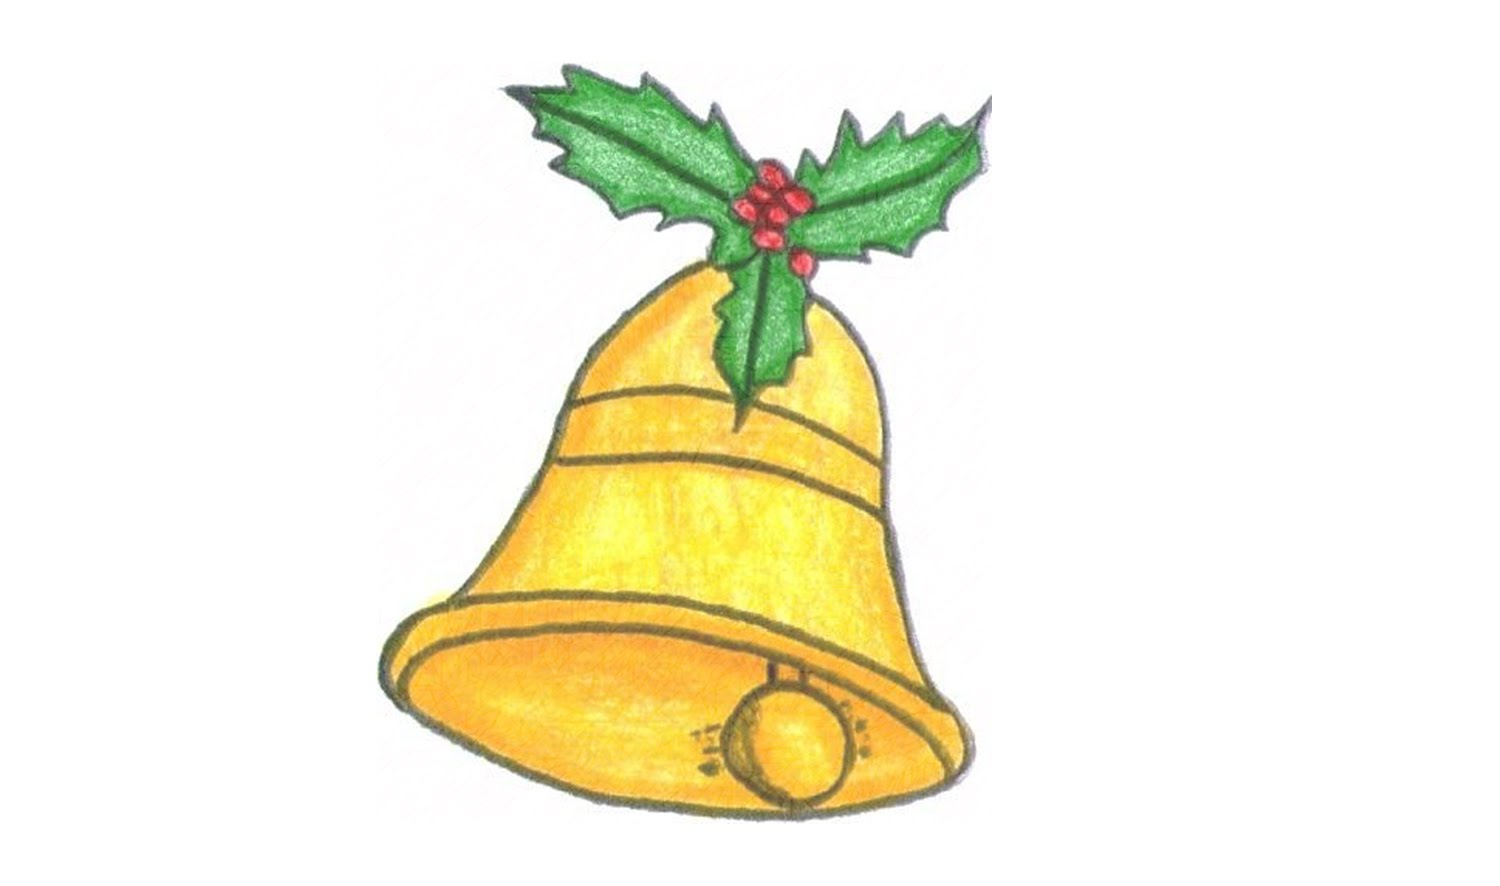 1500x886 How To Draw A Christmas Bell (Ornament)